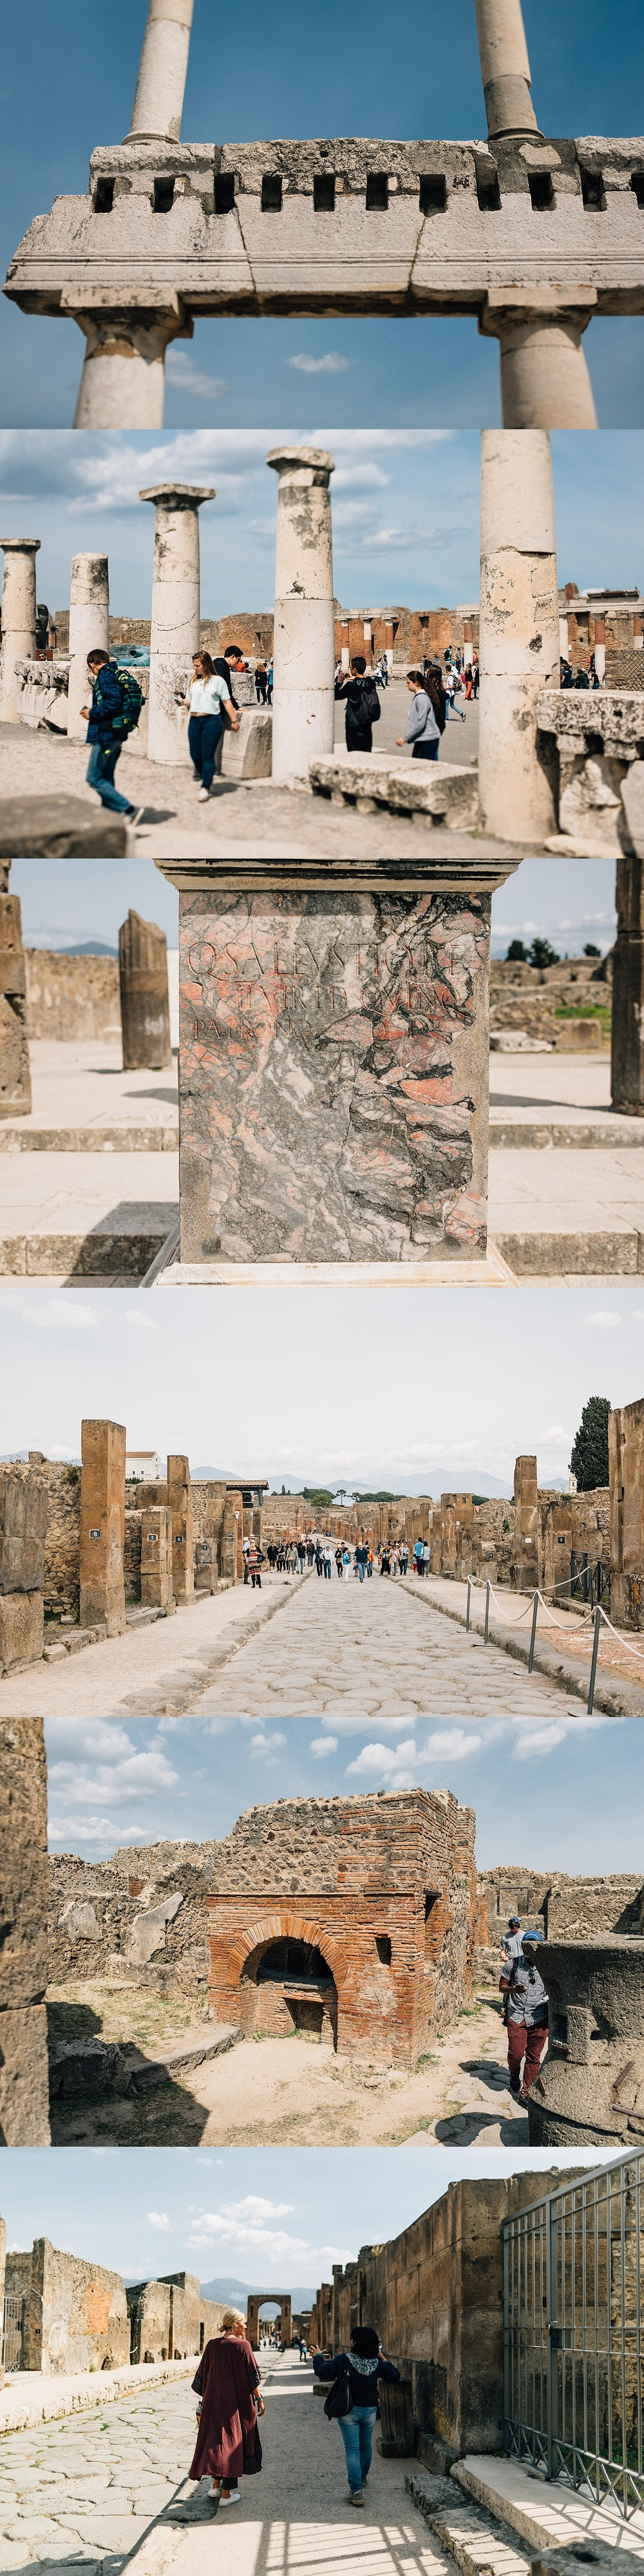 pompeii-private-tour.jpg